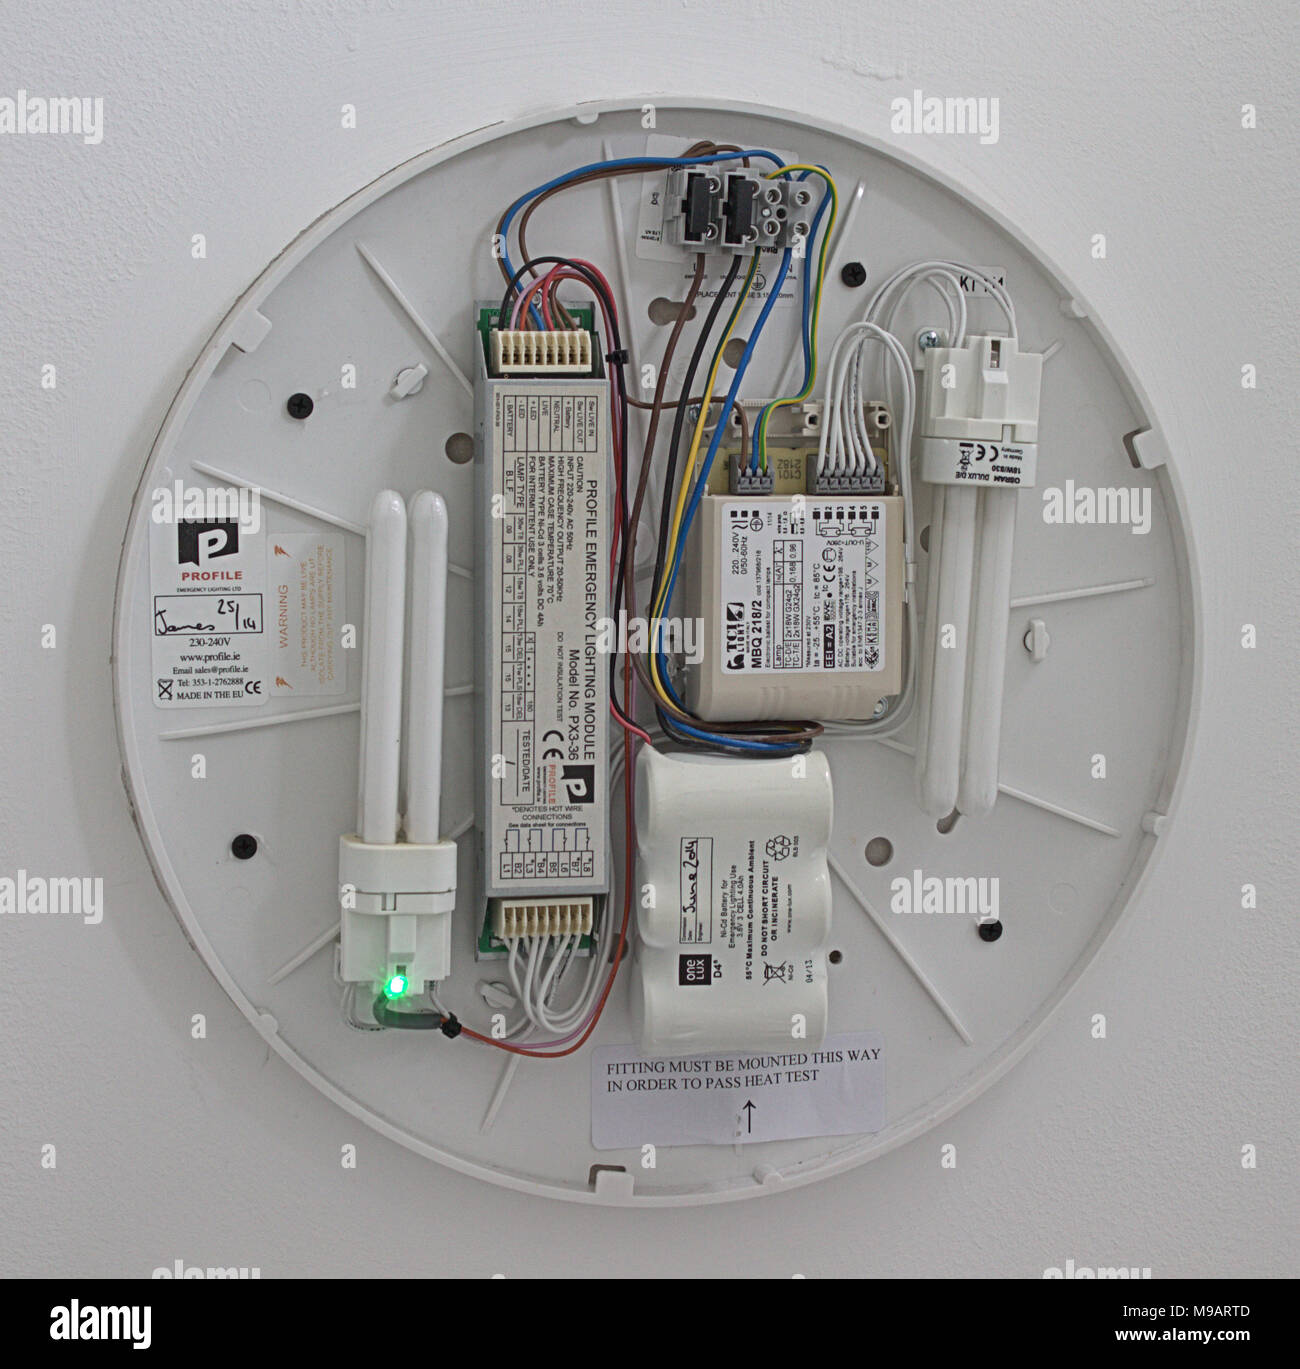 Phenomenal Electric Light Fitting With The Cover Removed Showing The Wiring Wiring Digital Resources Remcakbiperorg